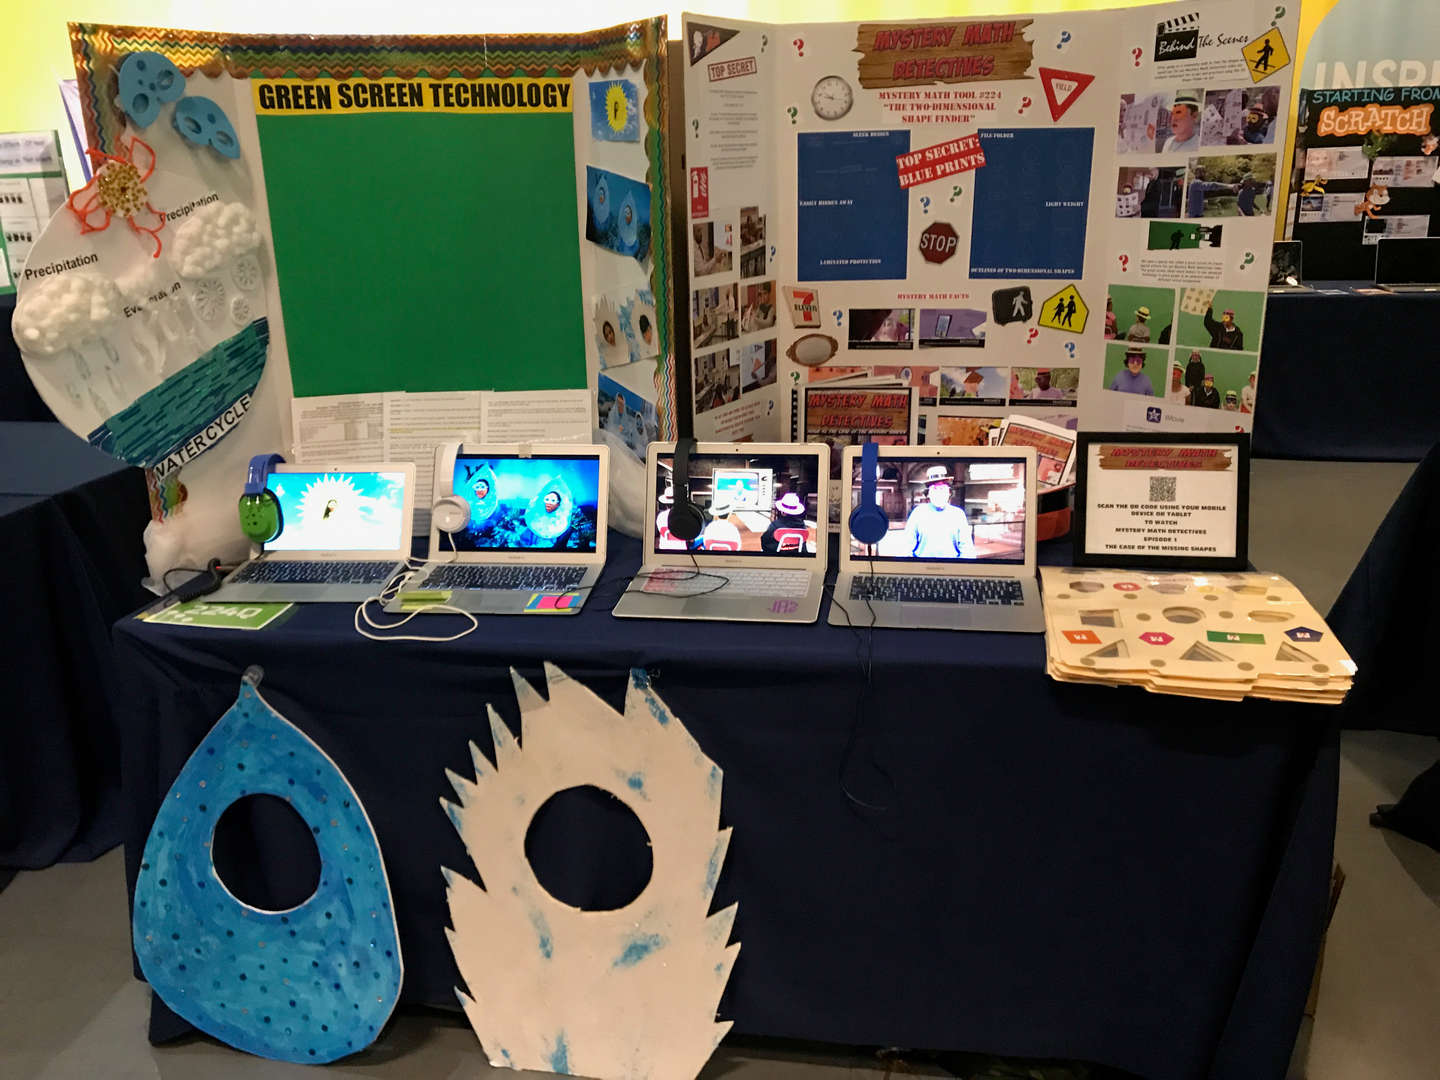 Student projects being displayed on a table.